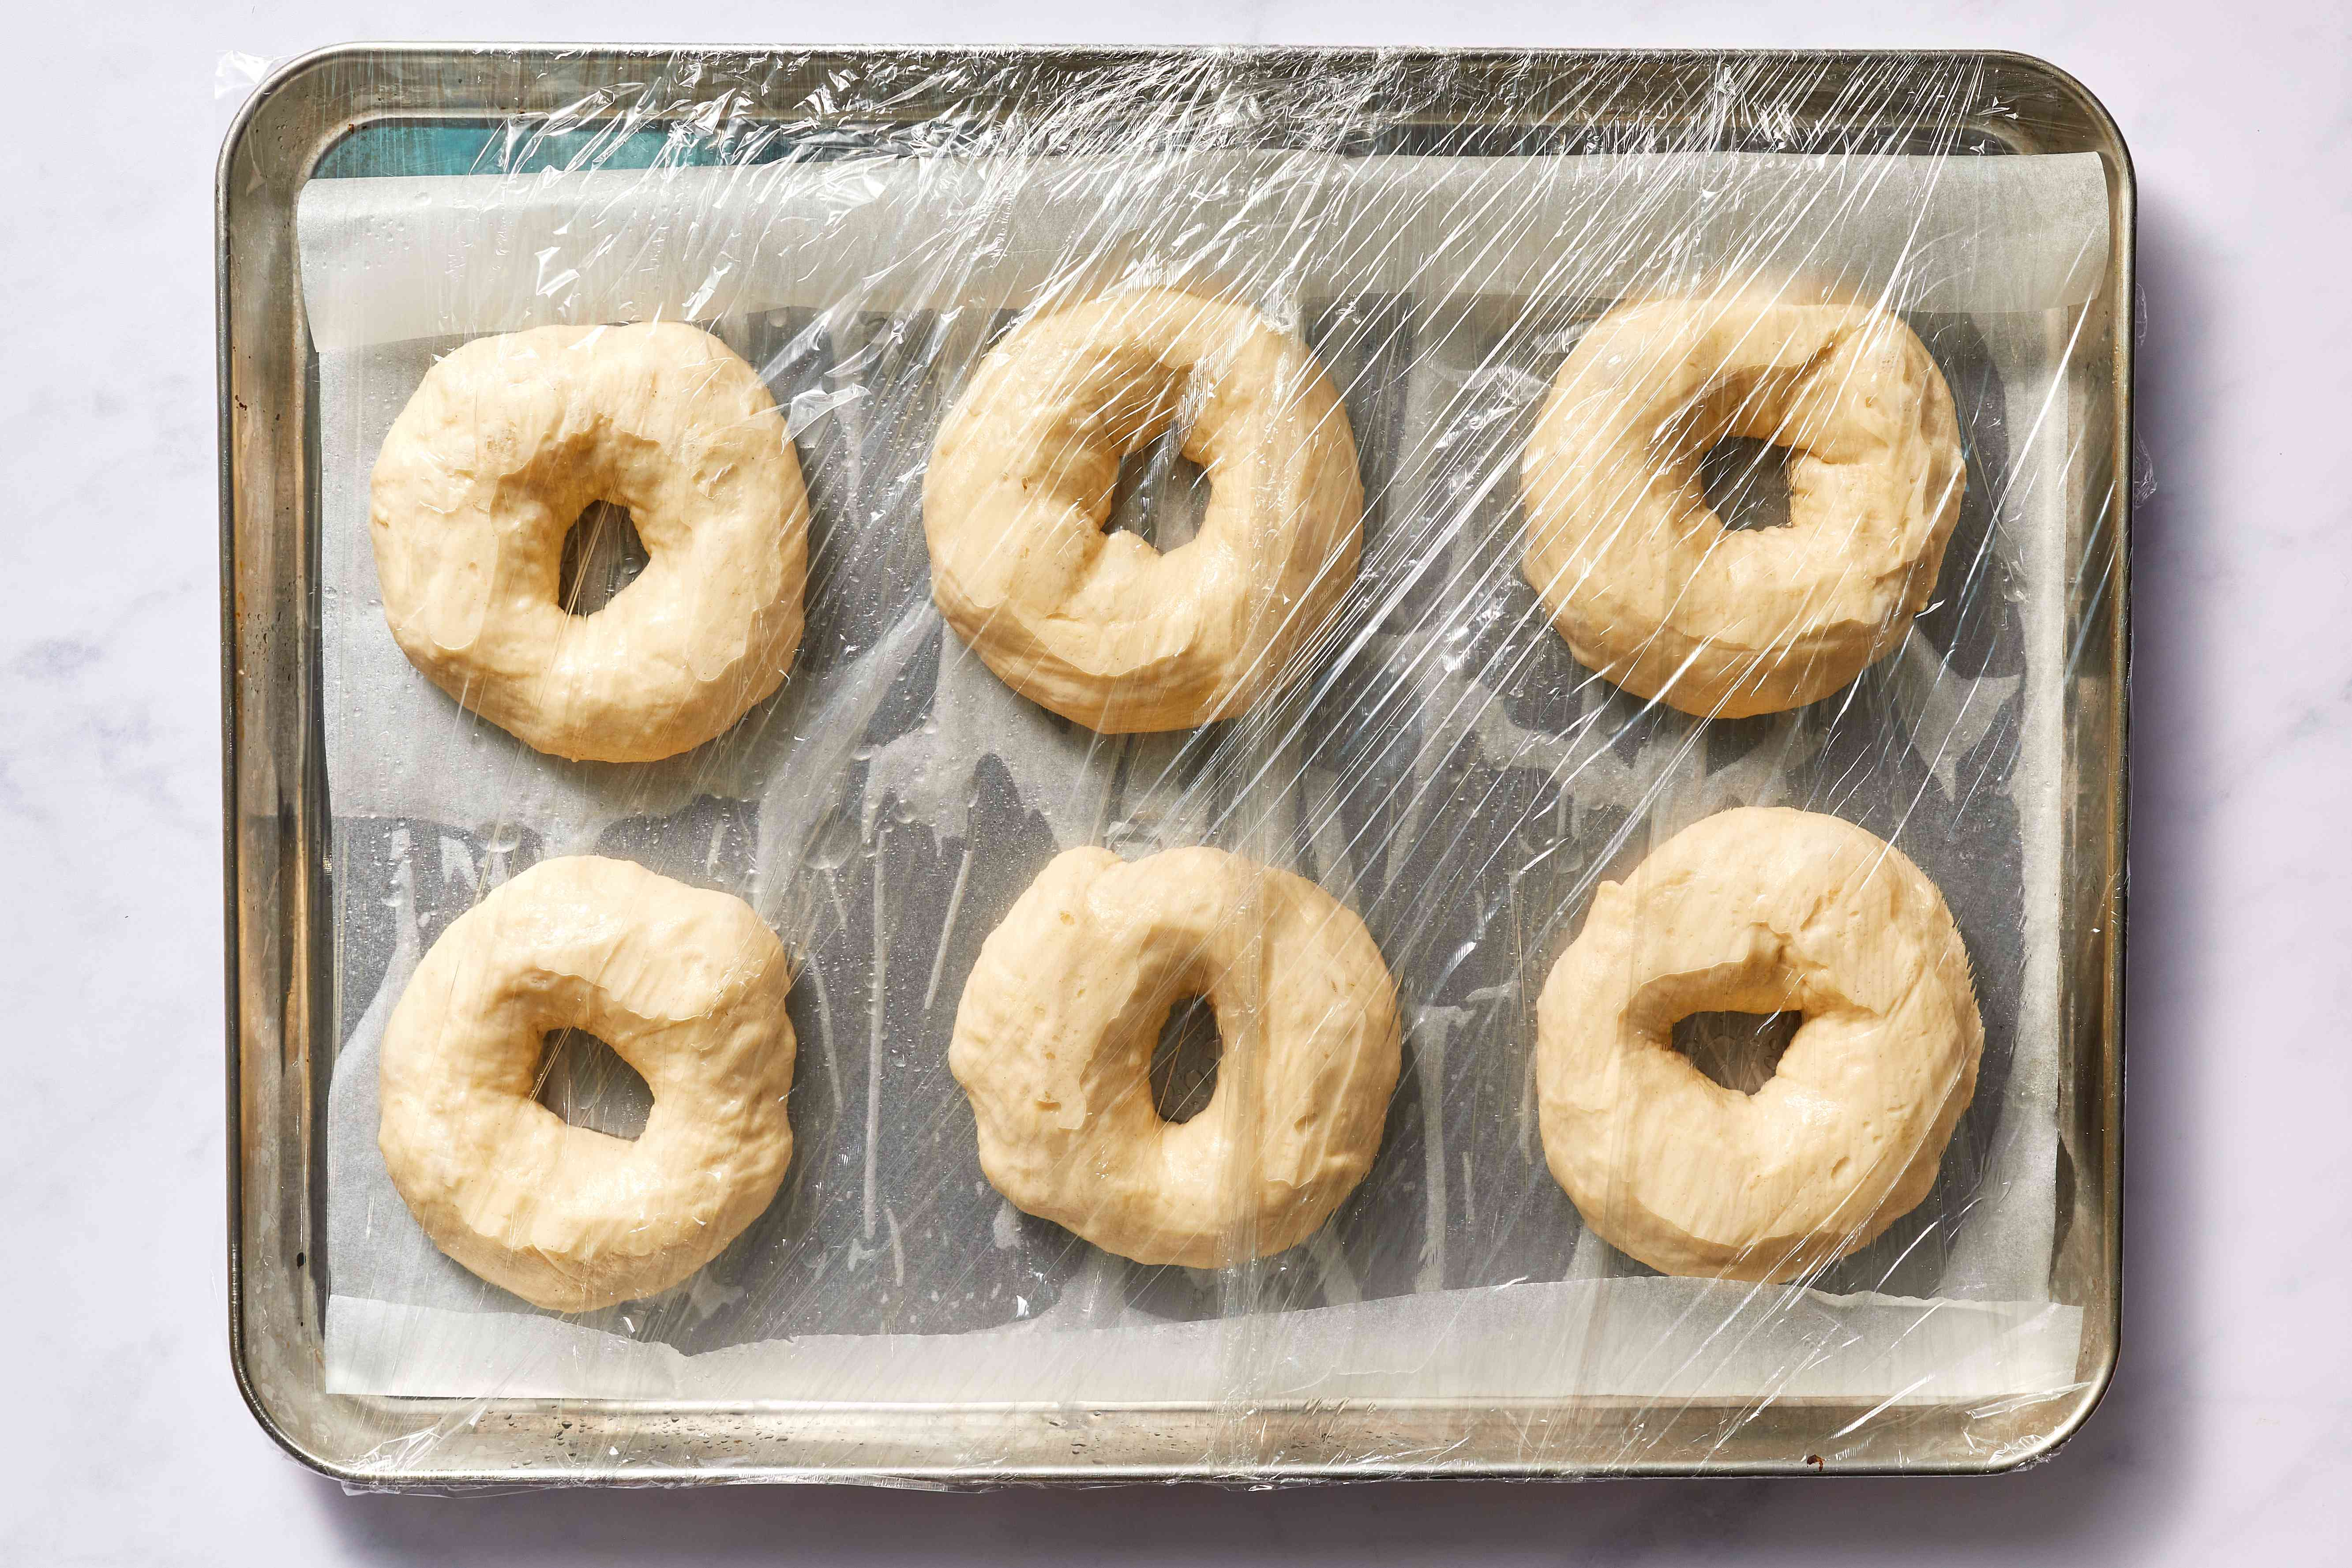 bagel dough on a parchment paper lined baking sheet, covered with plastic wrap